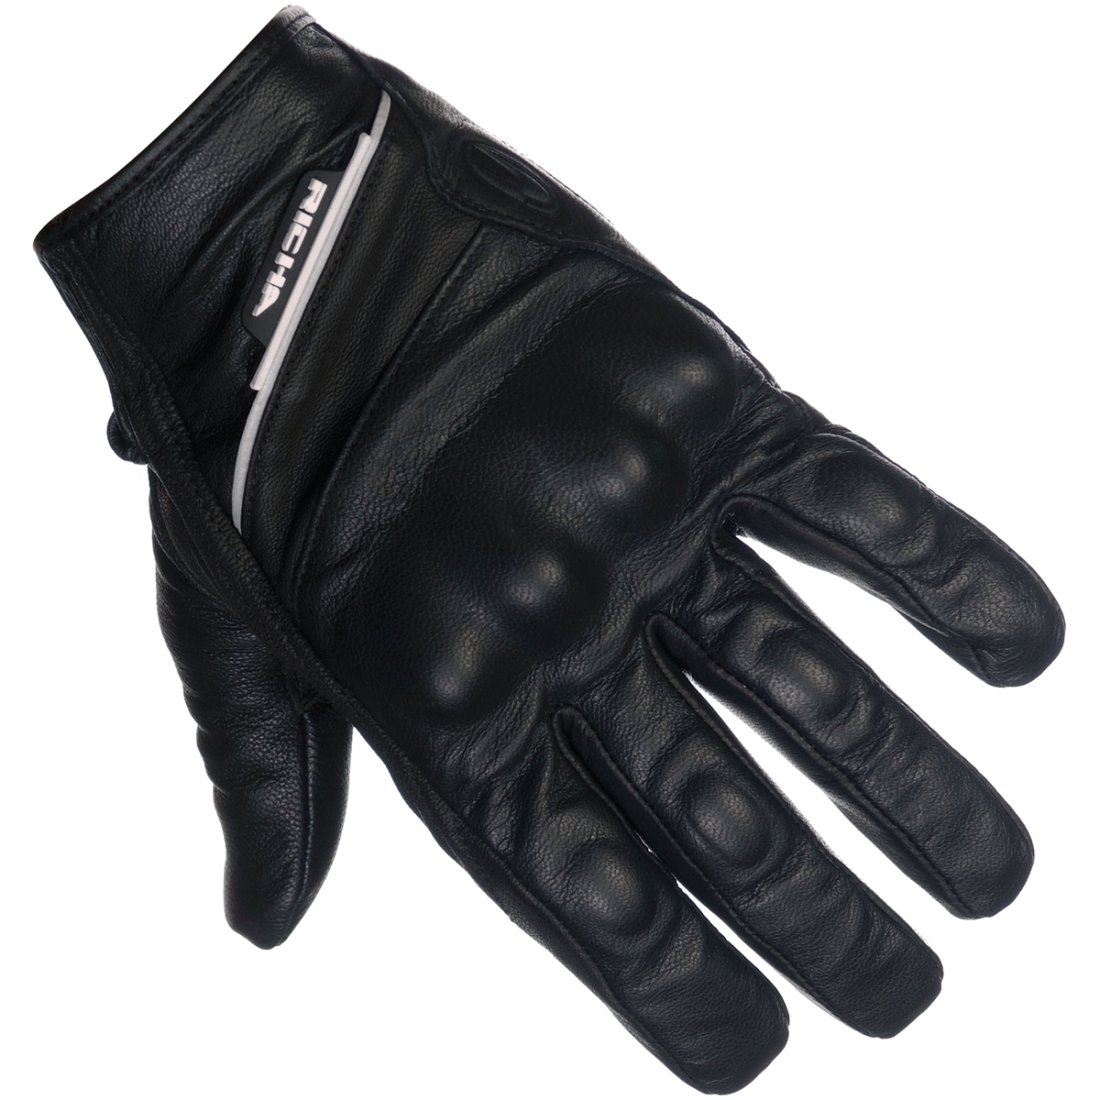 details for 100% high quality exquisite design RICHA CRUISER N Gloves